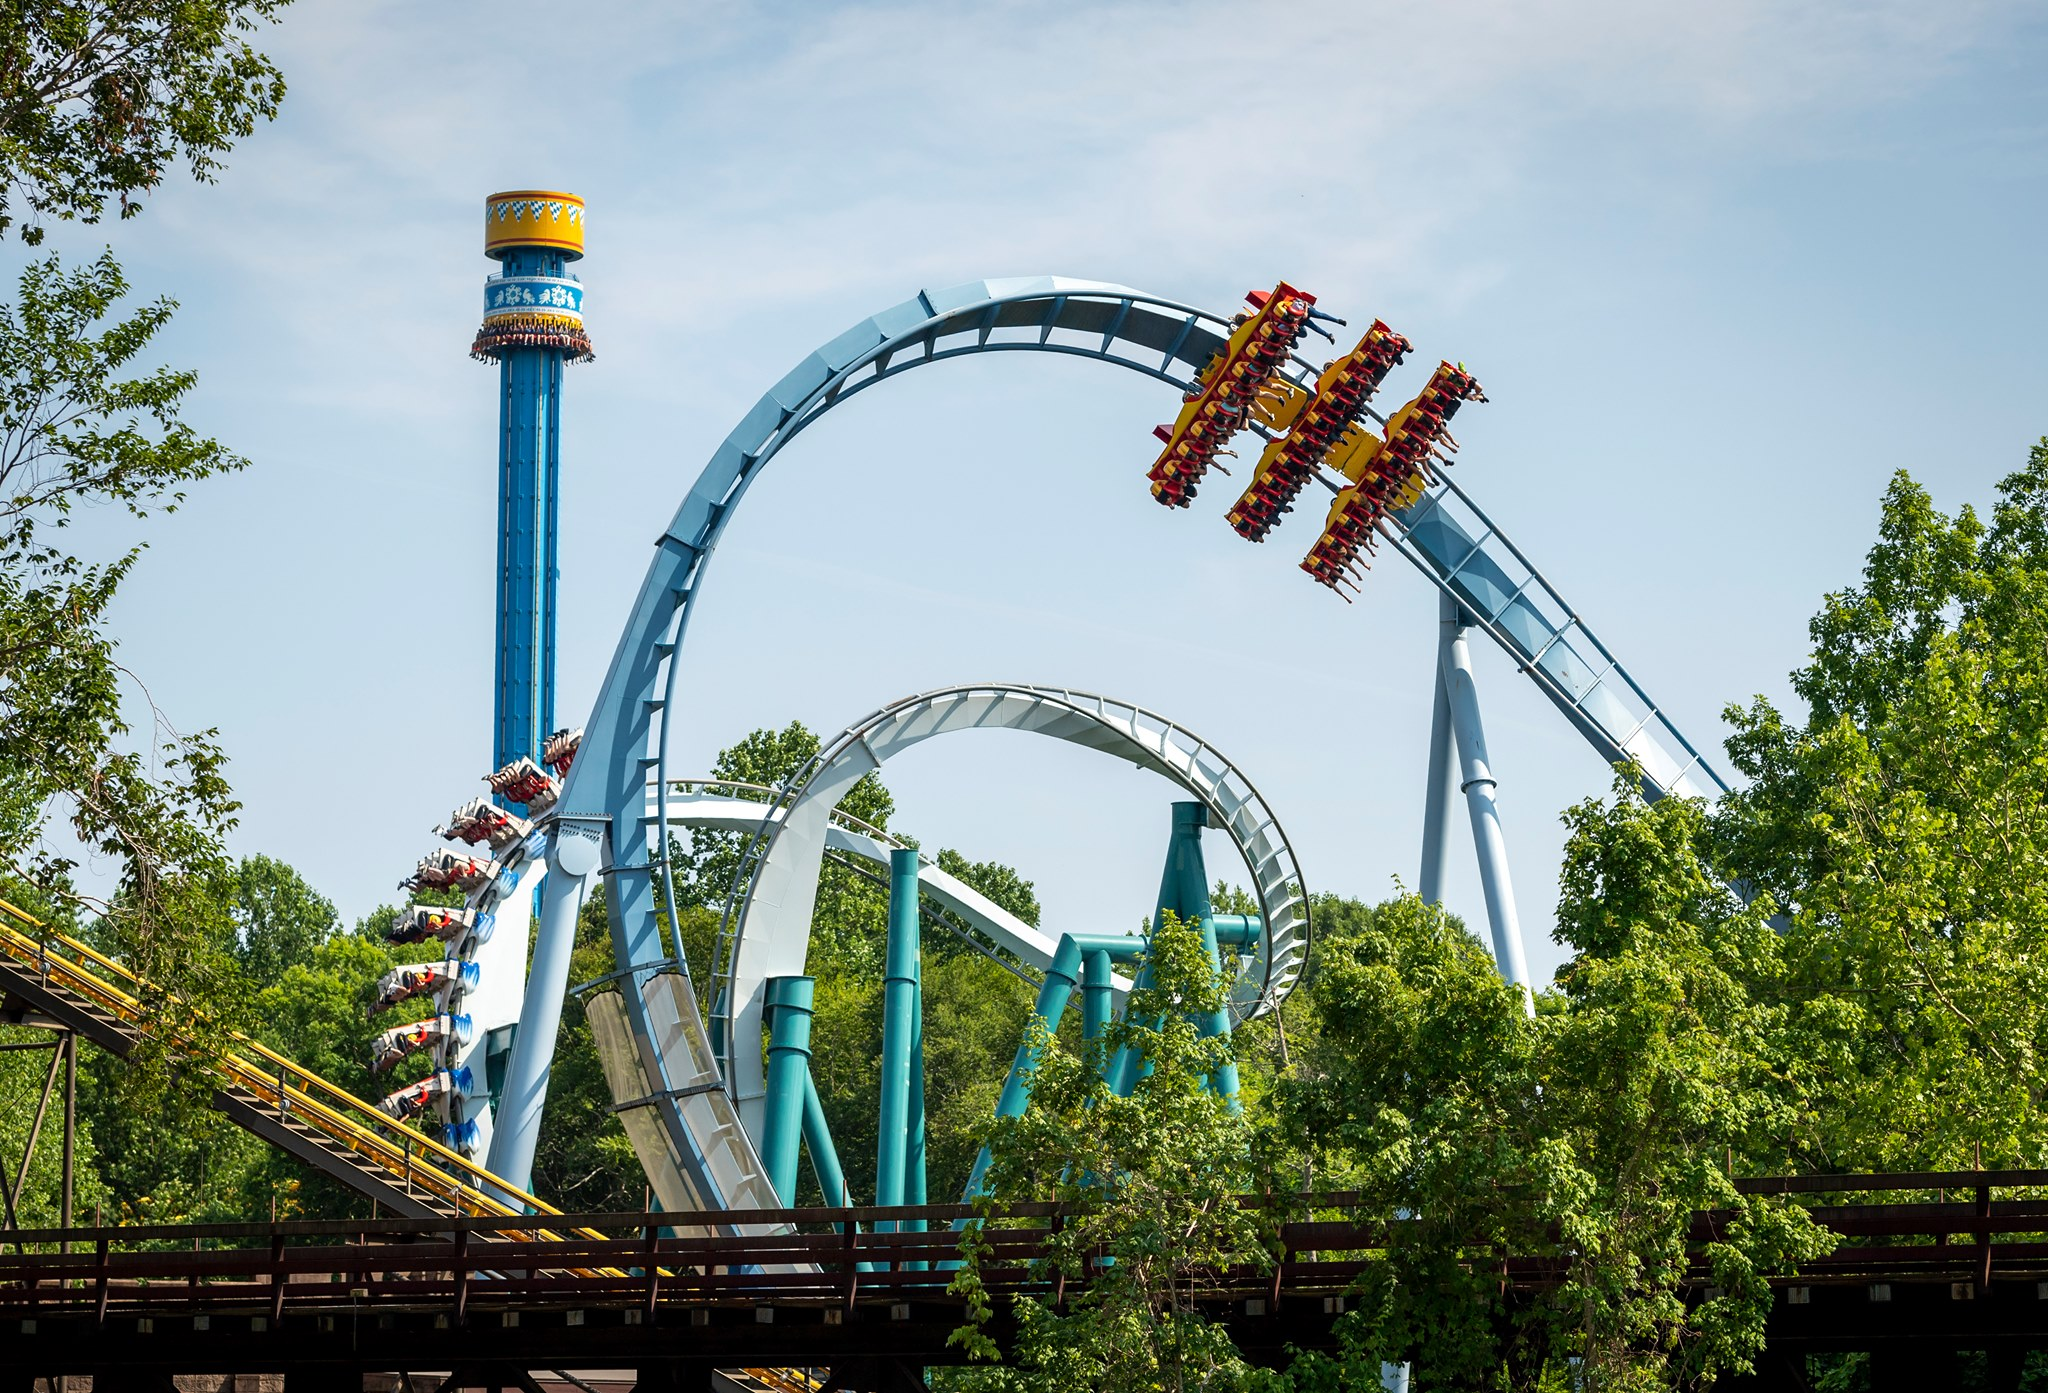 Busch Gardens Williamsburg 2022 Calendar.Busch Gardens To Open All Year Long With Limited Capacity Special Events Wavy Com